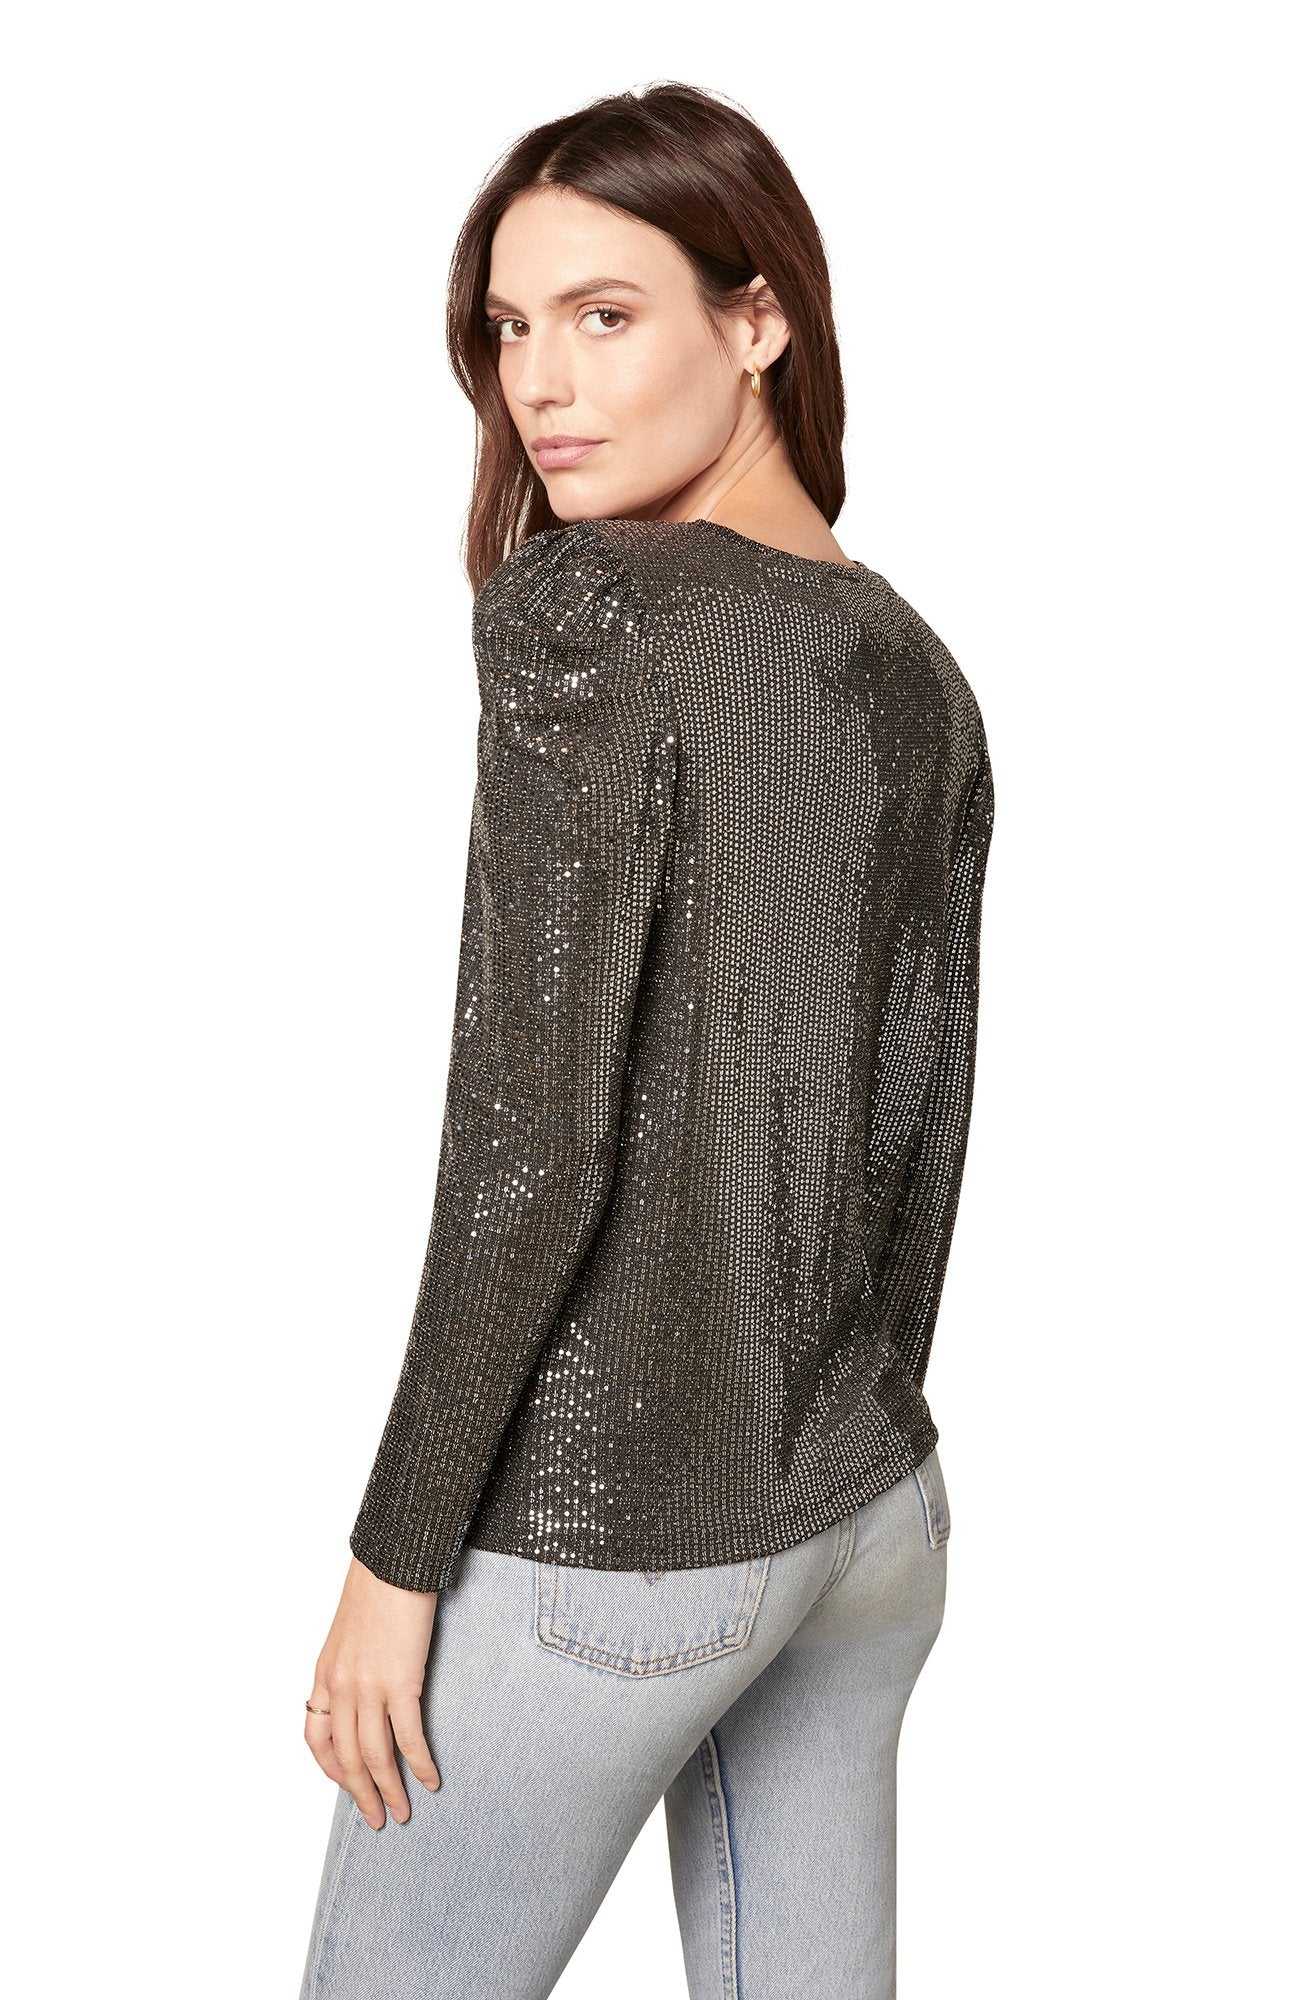 Let It Shimmer Top in Black